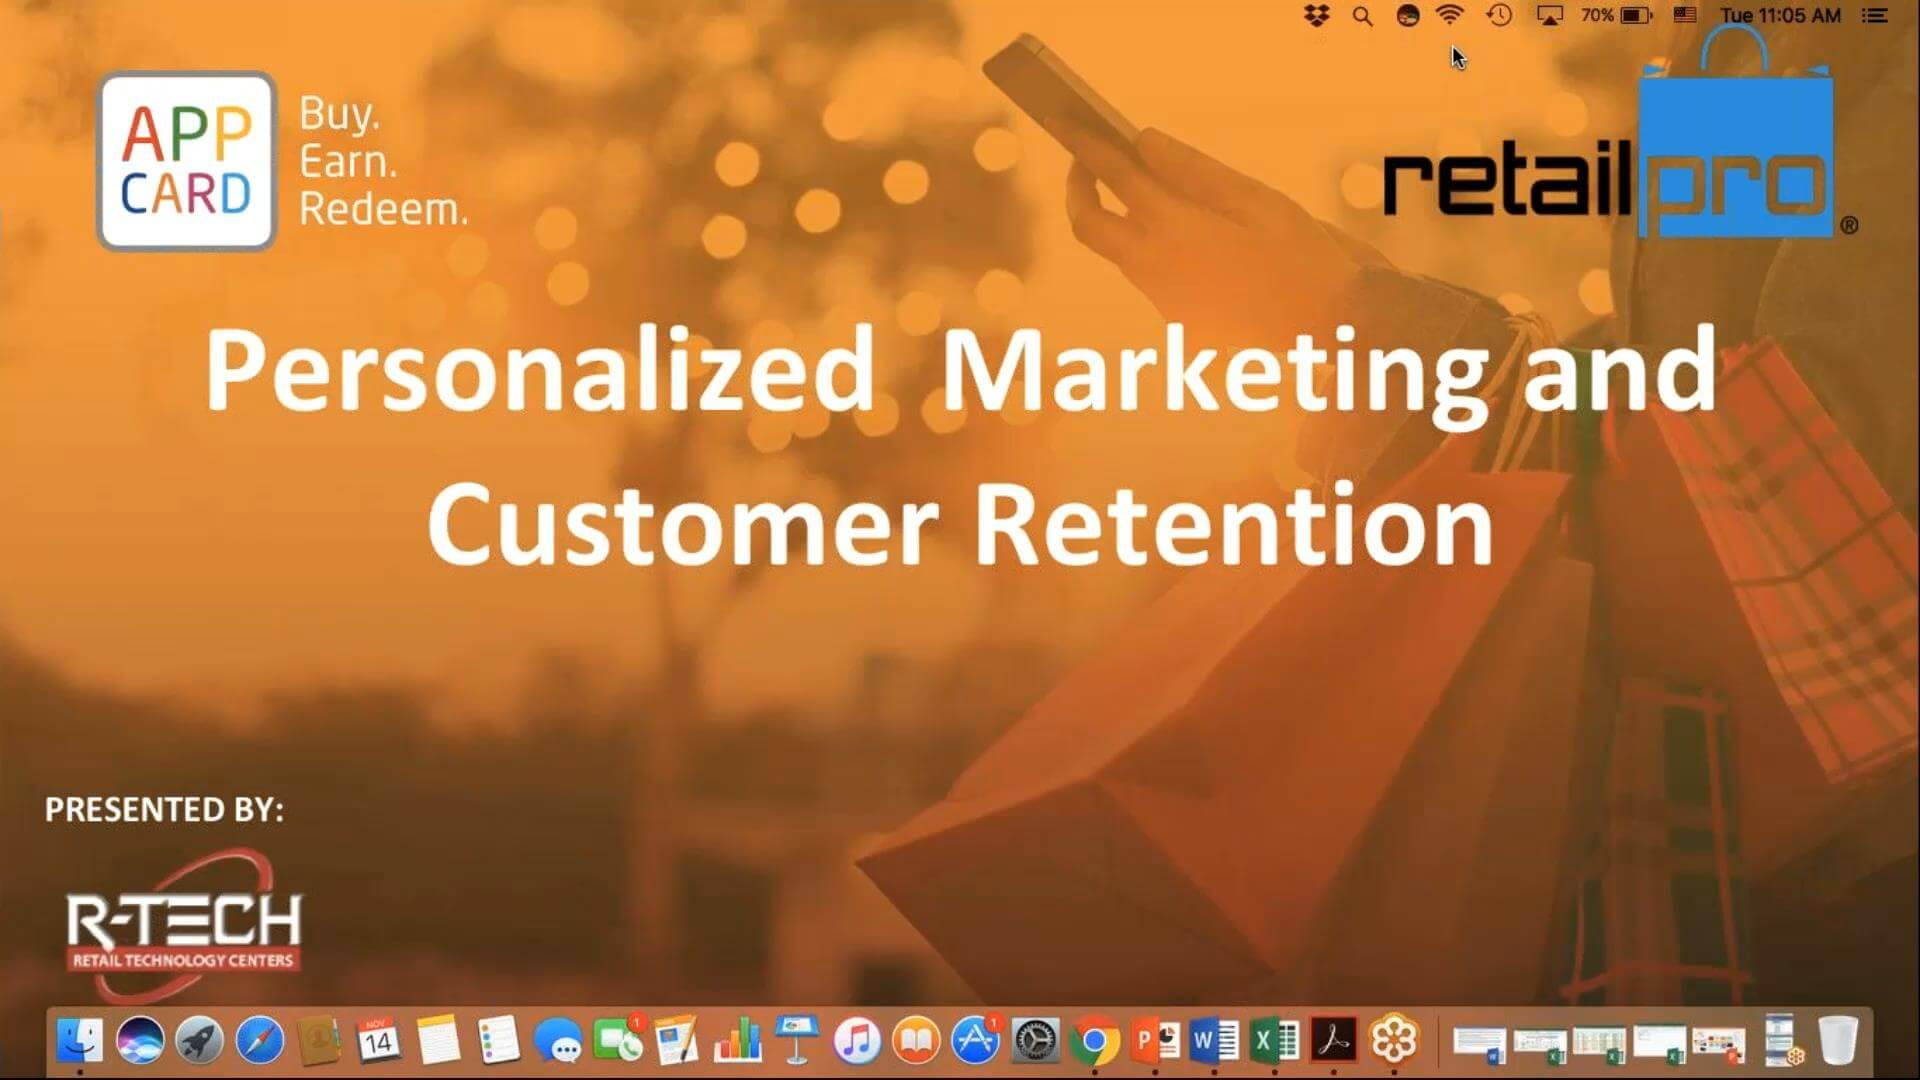 Personalized Marketing and Customer Retention for Retail Pro